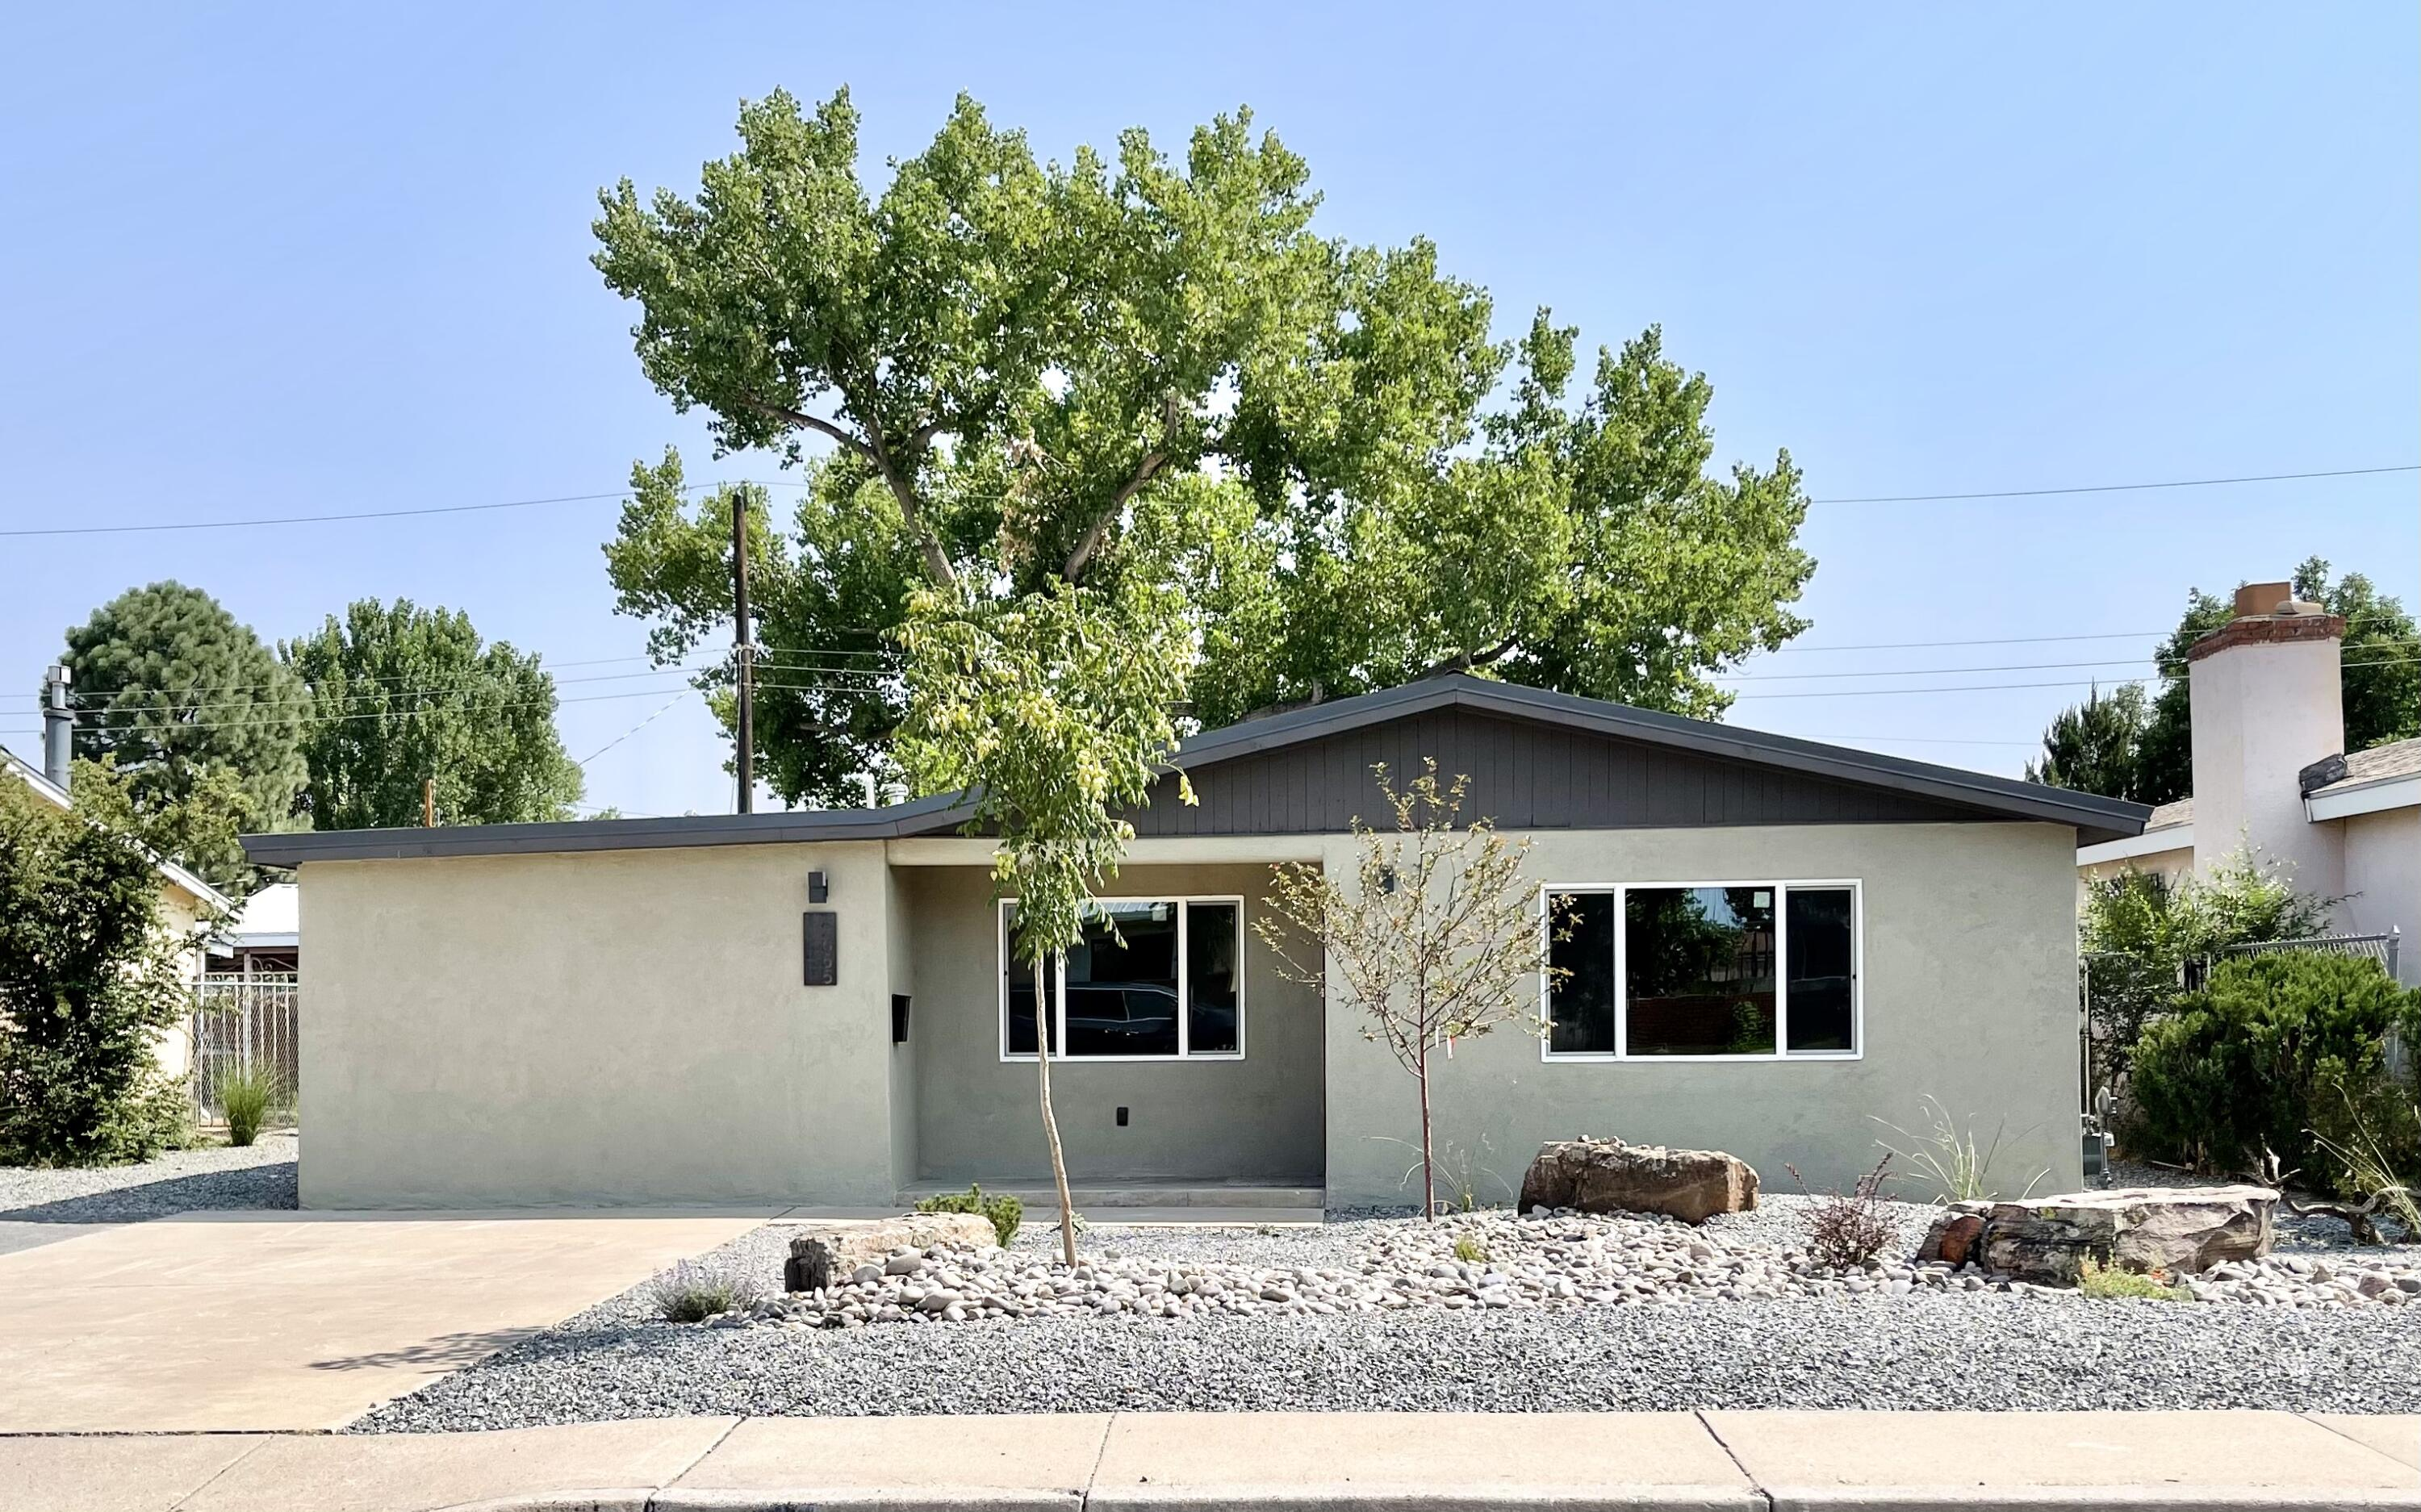 Beautiful Remodeled Home settled near the River in the North Valley. This Home feels like a New Build with everything upgraded. Walk in to this wide open Living room overlooking the Amazing Kitchen that has a Huge Granite counter top with Custom Cabinets that Shine. Lots of Recess lighting that brightens up the room plus Nice Big Windows to bring in natural light. Walk into the Spacious Master suite that has a big walk in closet. The Master bathroom shower is Stunning with the marble tile. New Roof, New Windows, All New Plumbing, All New Electrical wiring, Synthetic Stucco, New Water Heater, New Furnace and so much more. Enough room for an RV/Trailer. Walking distance to the River and Rio Grande nature Center. Close to the Freeway and Old Town and Downtown. You Need to see this House.